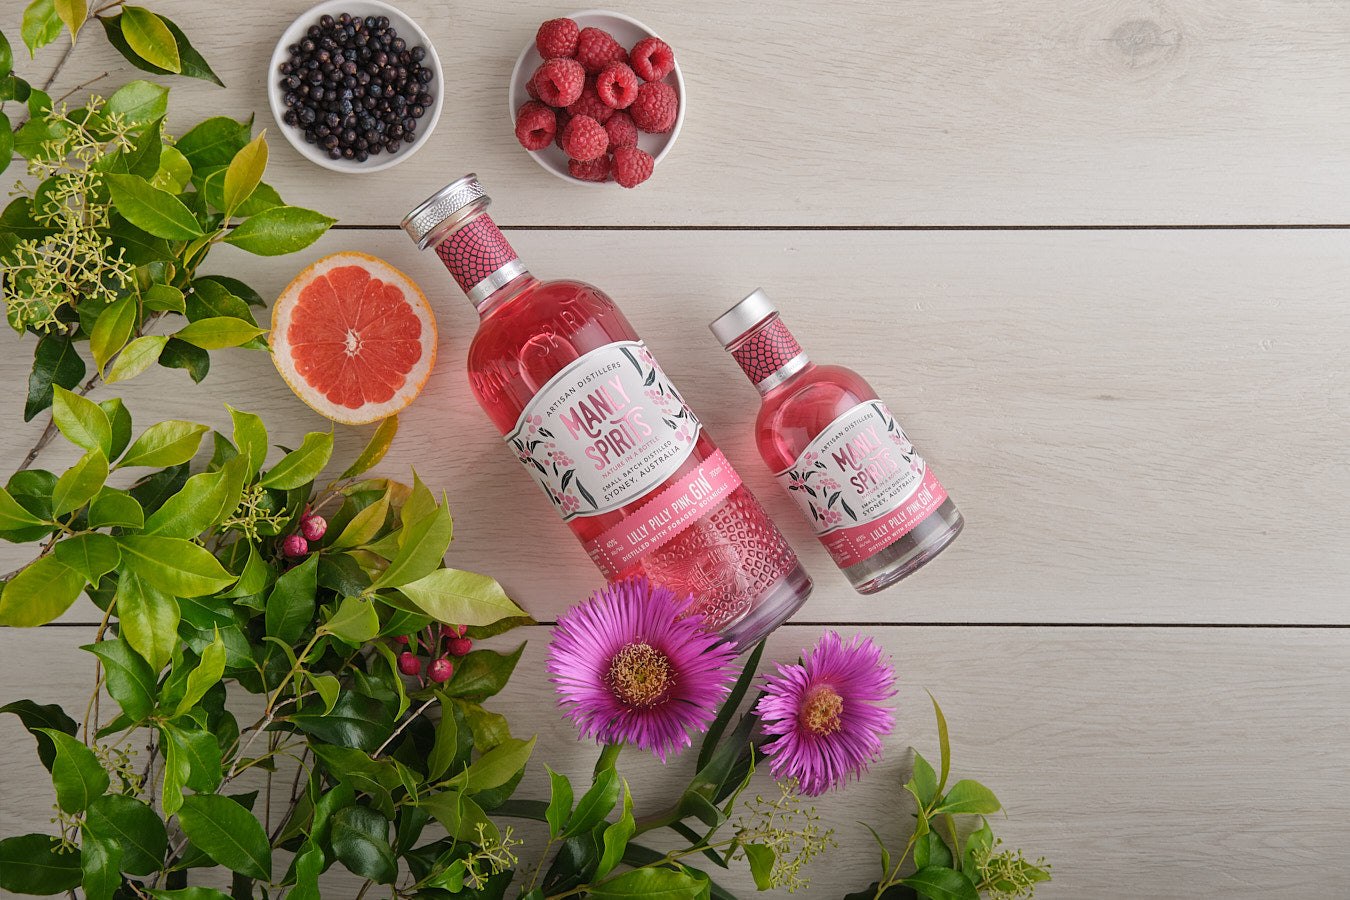 Manly Spirits - Lilly Pilly Pink Gin | Lillywhite & Brown Spirits Store